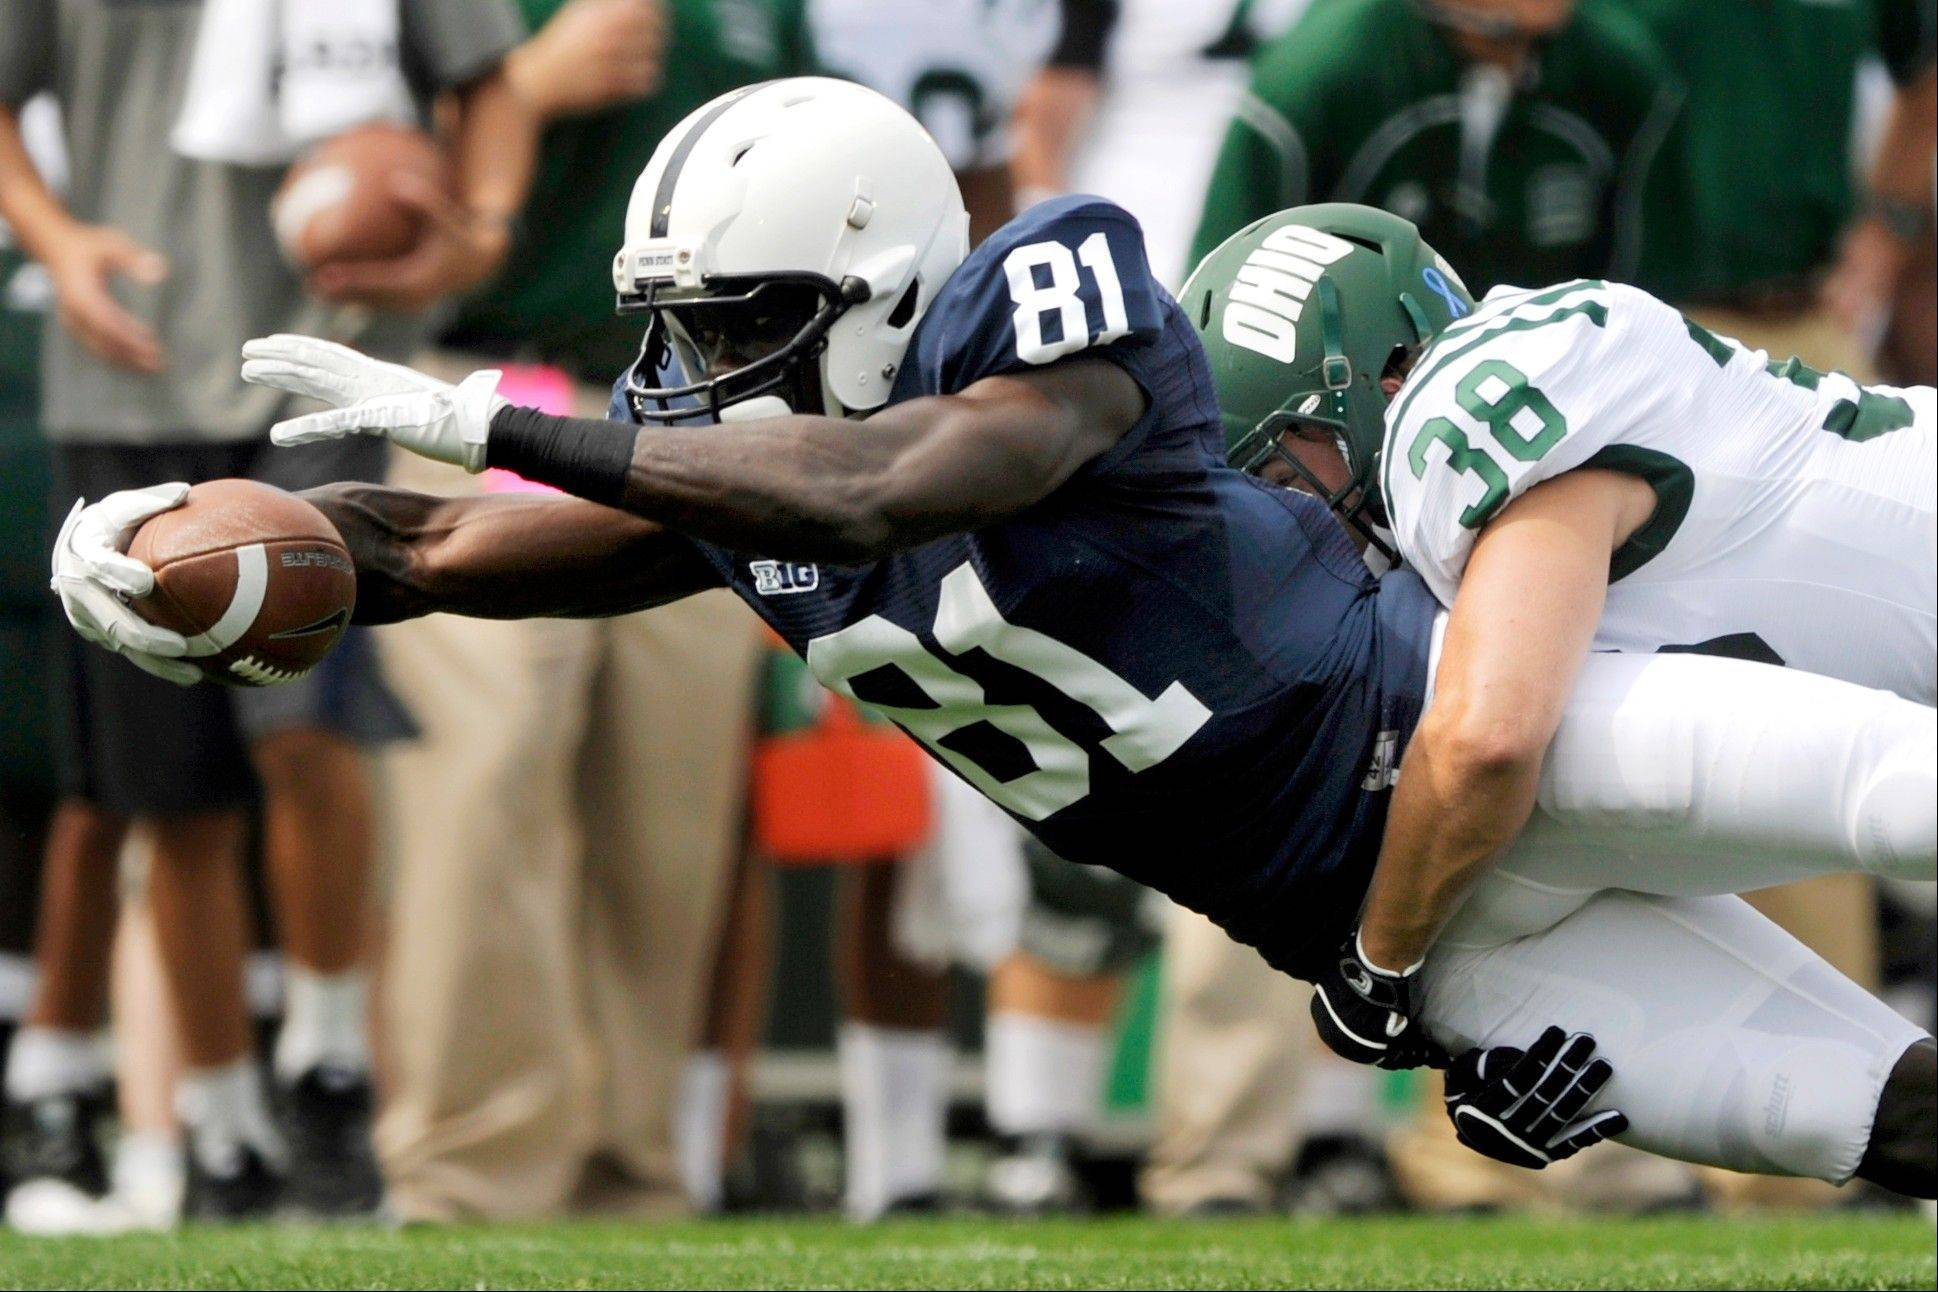 Penn State�s Shawney Kersey is tackled by Ohio�s Keith Moore during last Saturday�s game in State College, Pa. Ohio won 24-14